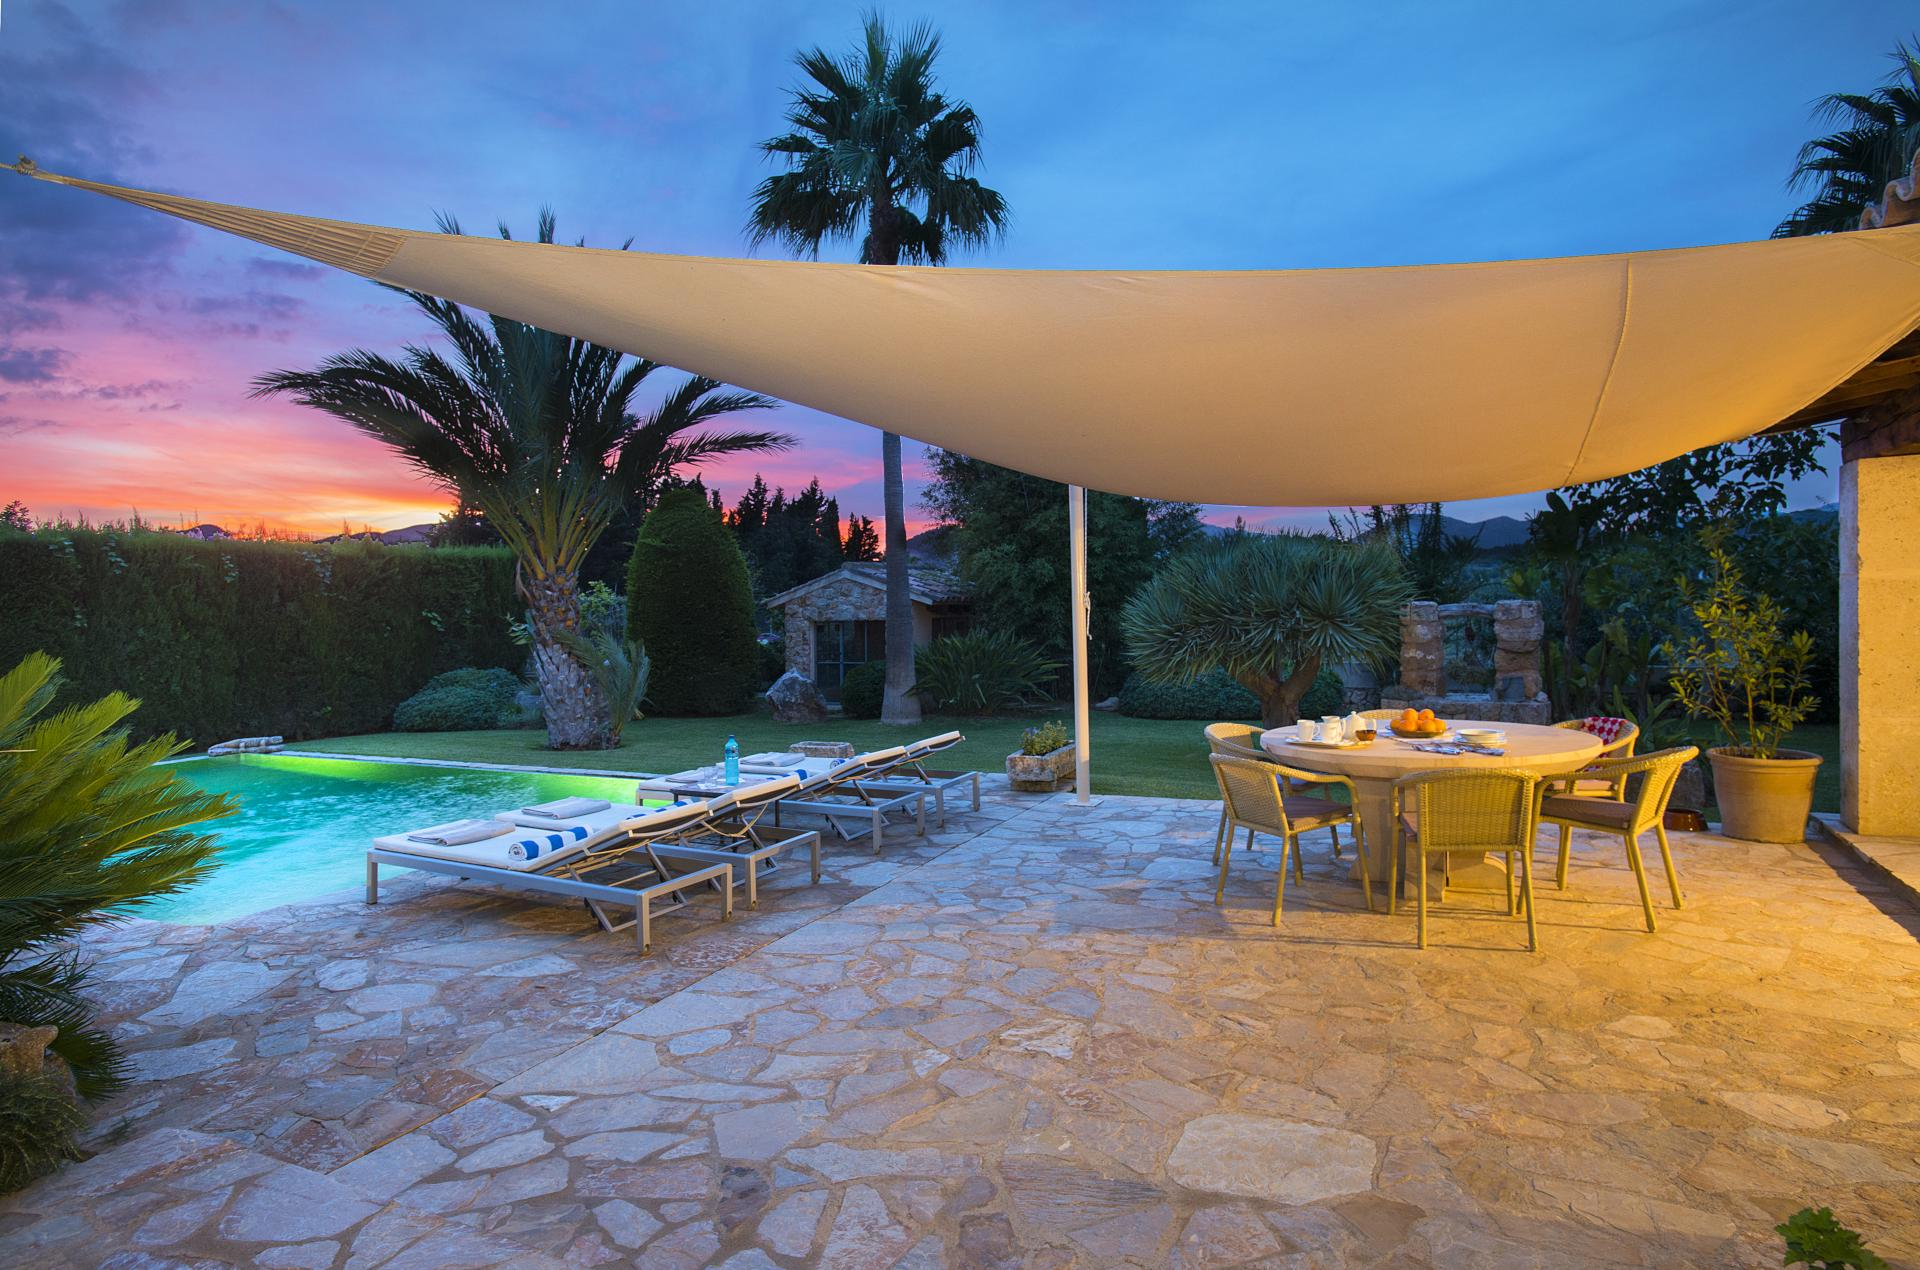 Villa Pepi: Perfectly positioned to explore the character towns of Pollenca and Alcudia